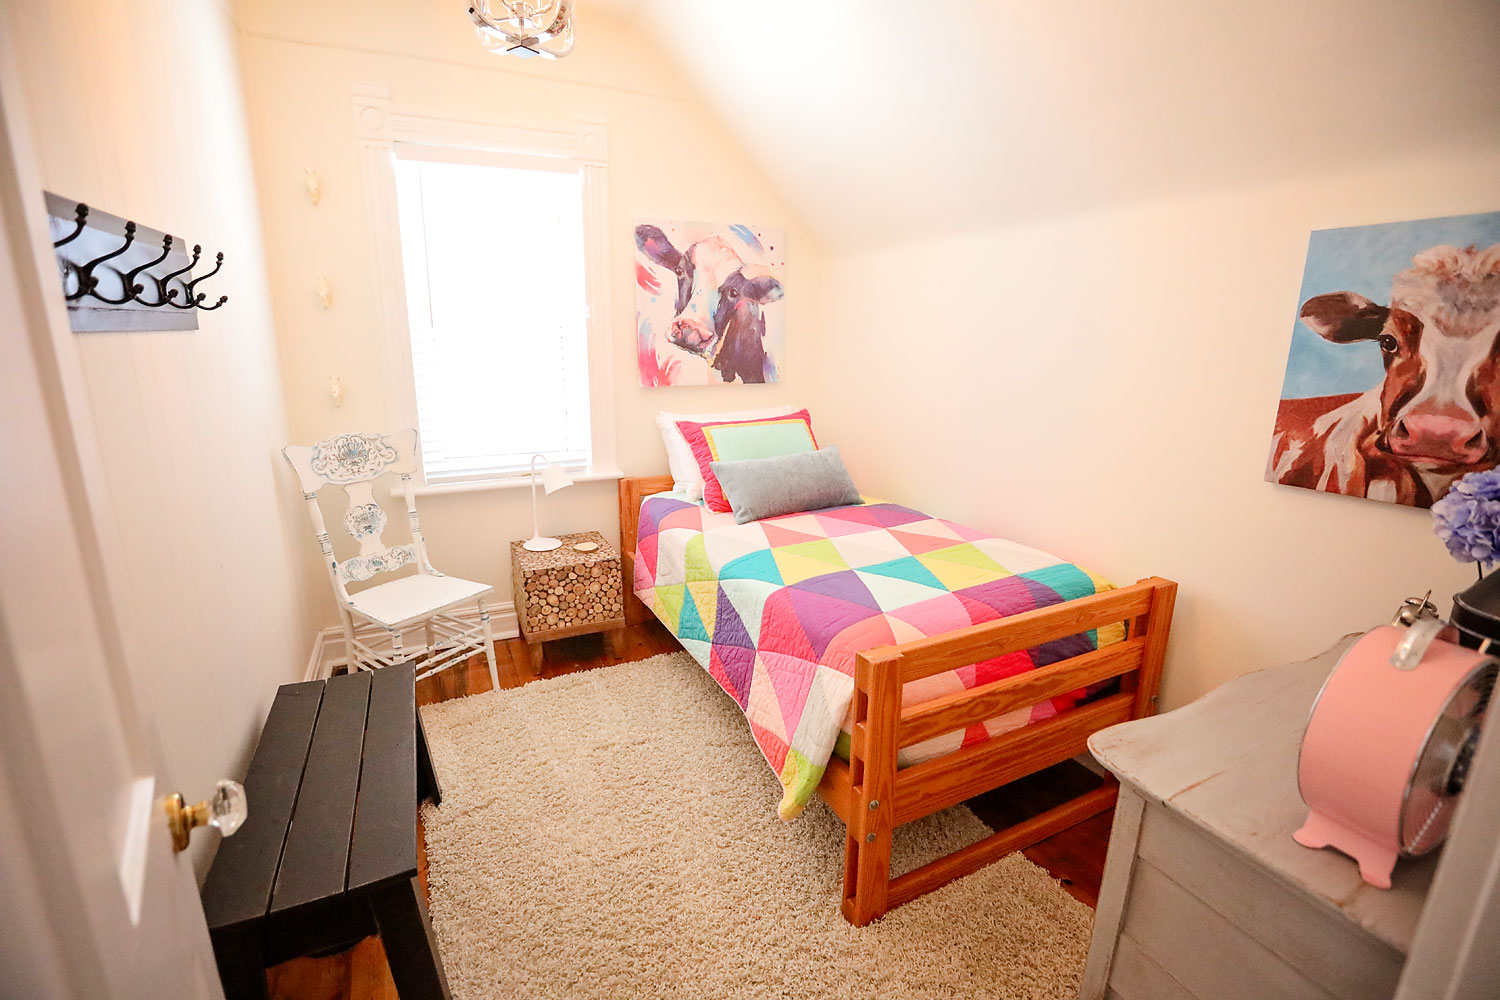 twin bedroom - Enjoy the super comfy bed & adorable decor complete with a bright geometric quilt.